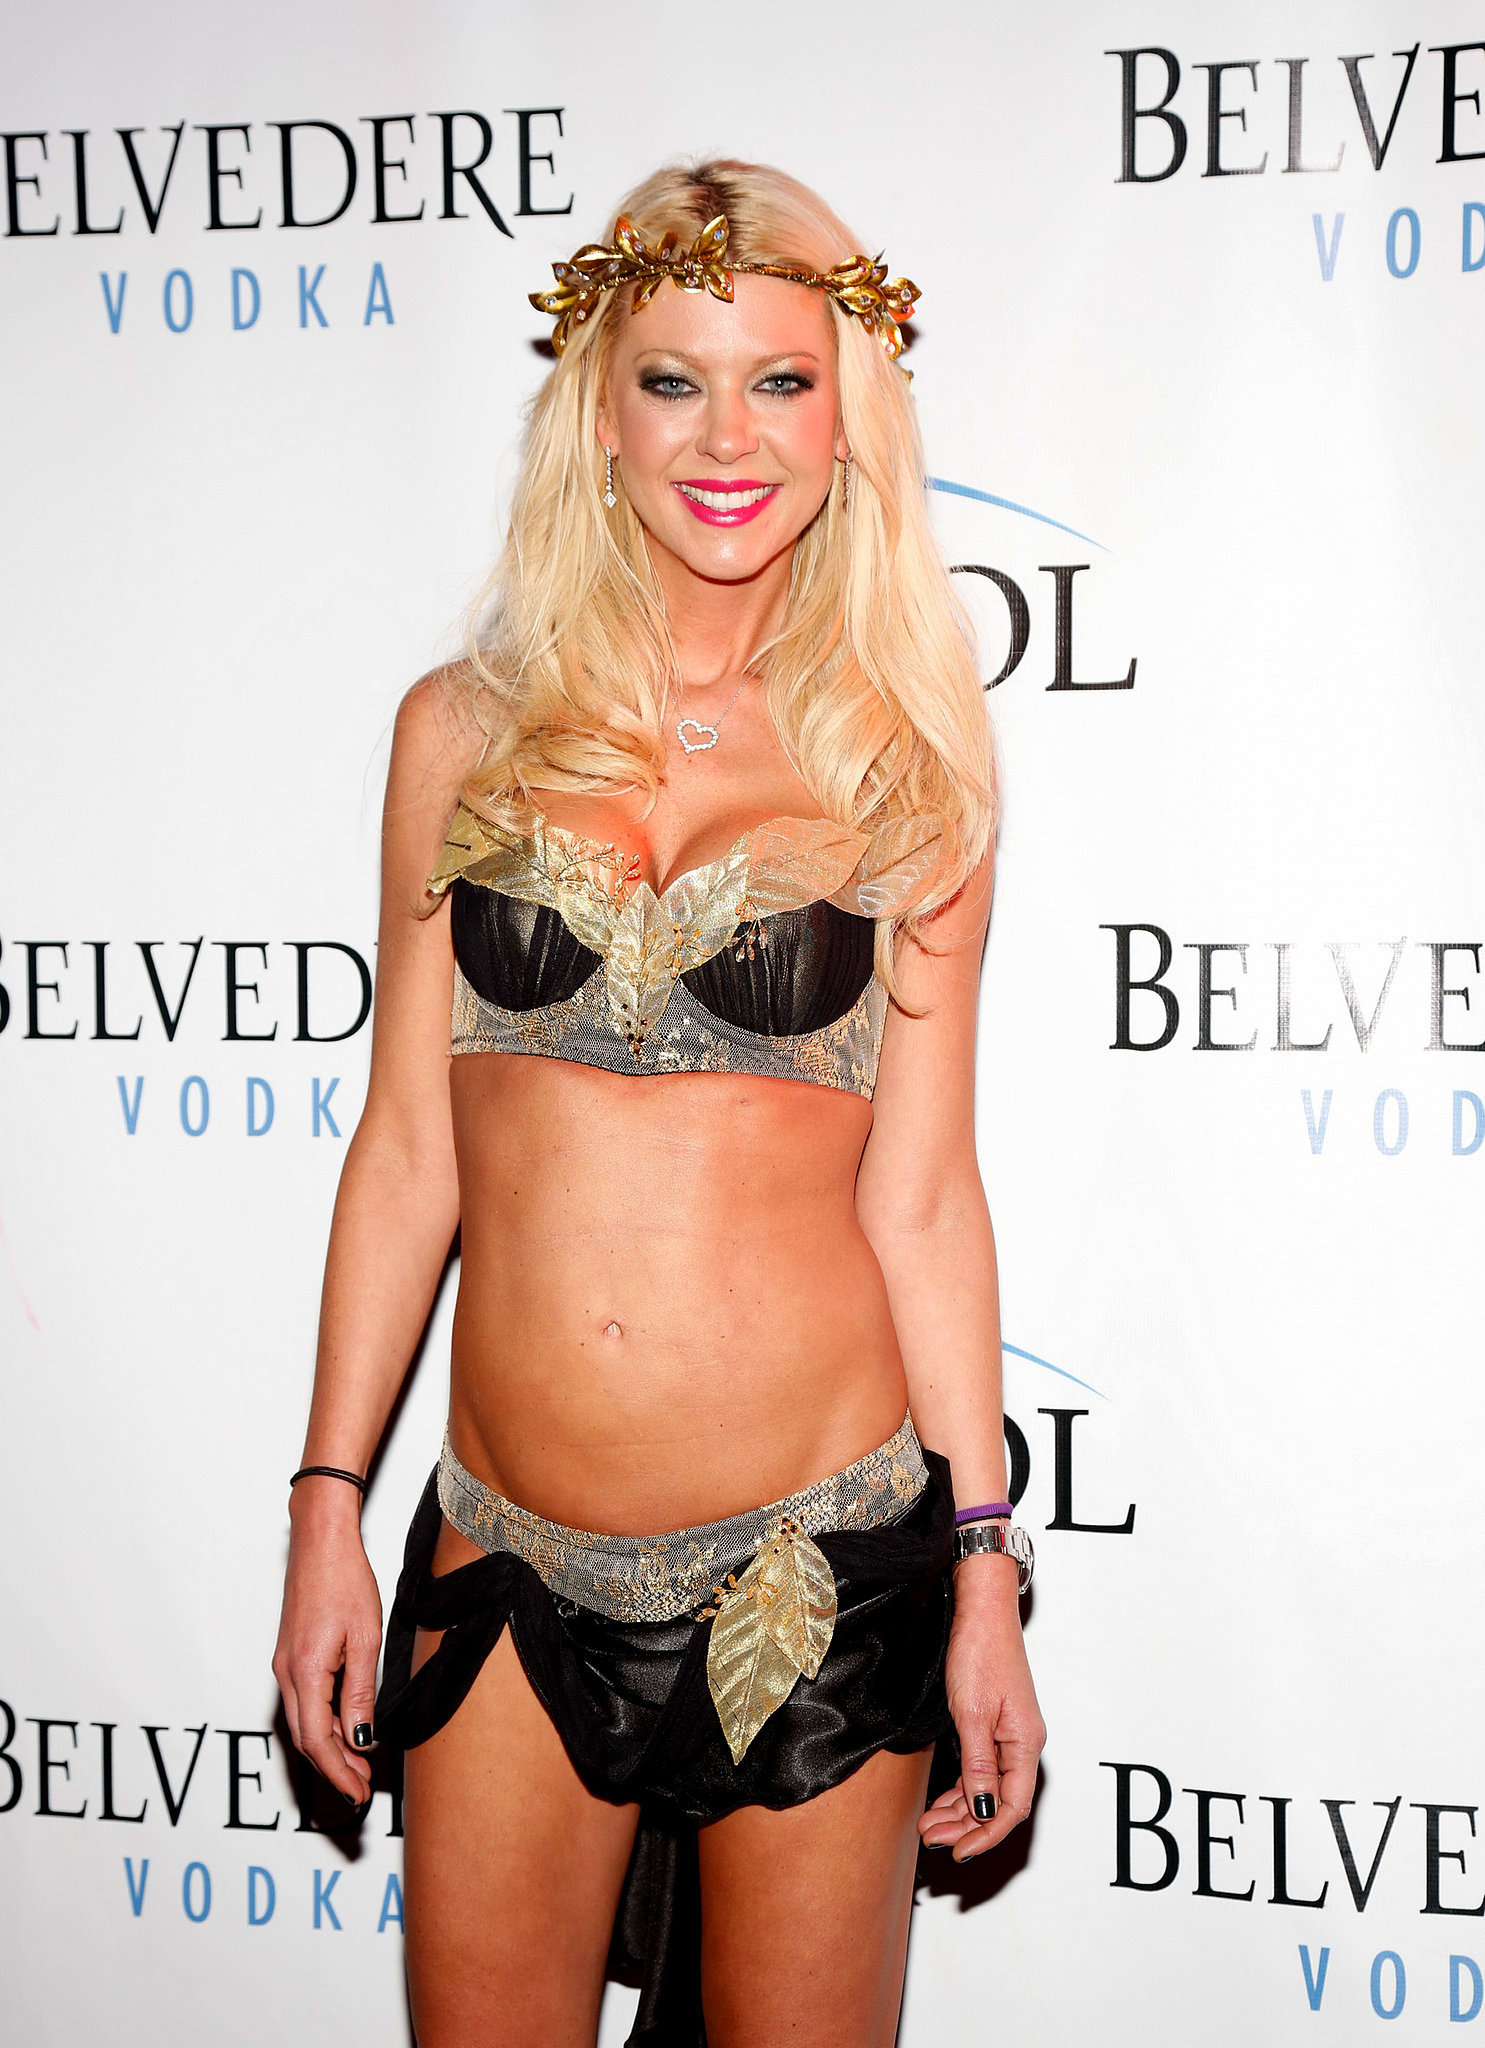 tara reid hosted a 2013 halloween party in a skimpy